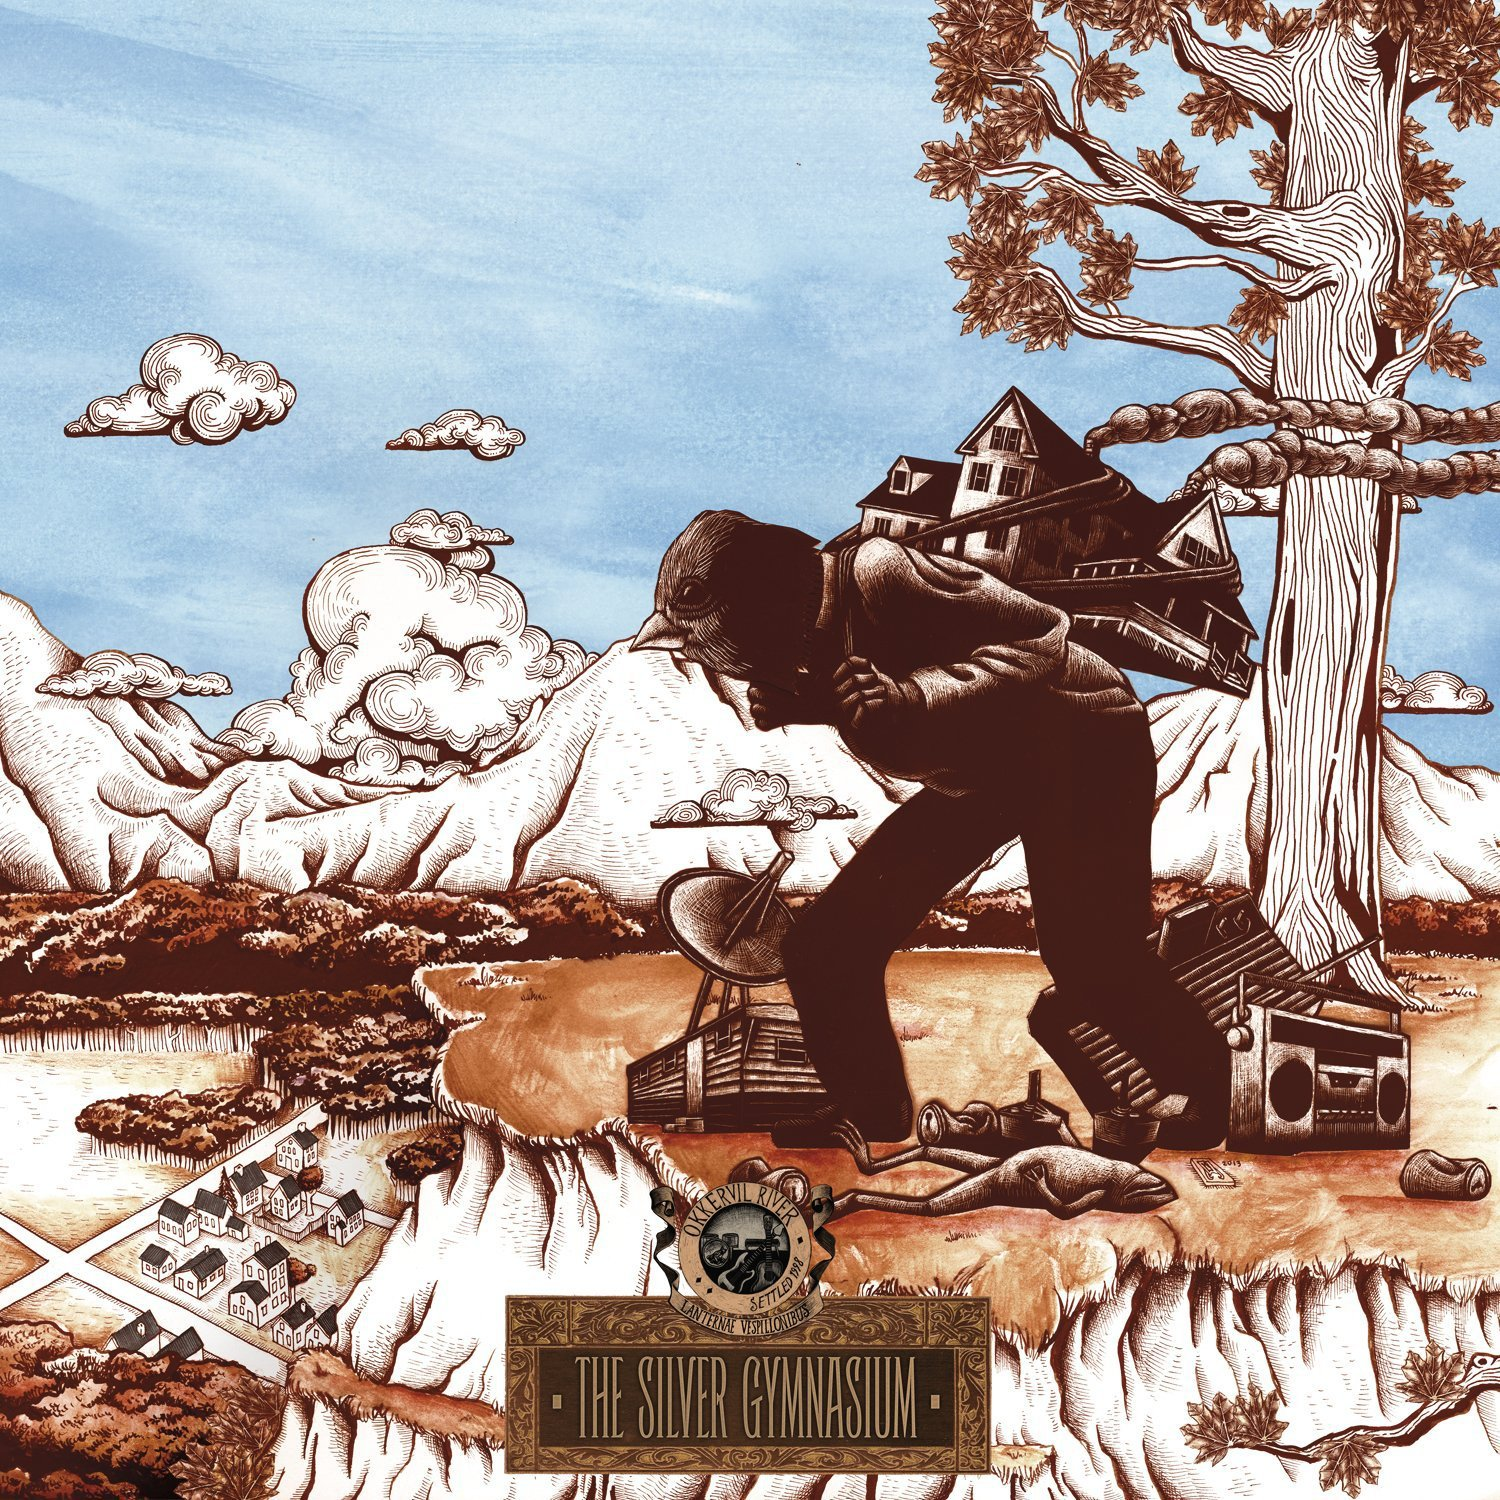 Okkervil River, The Silver Gymnasium